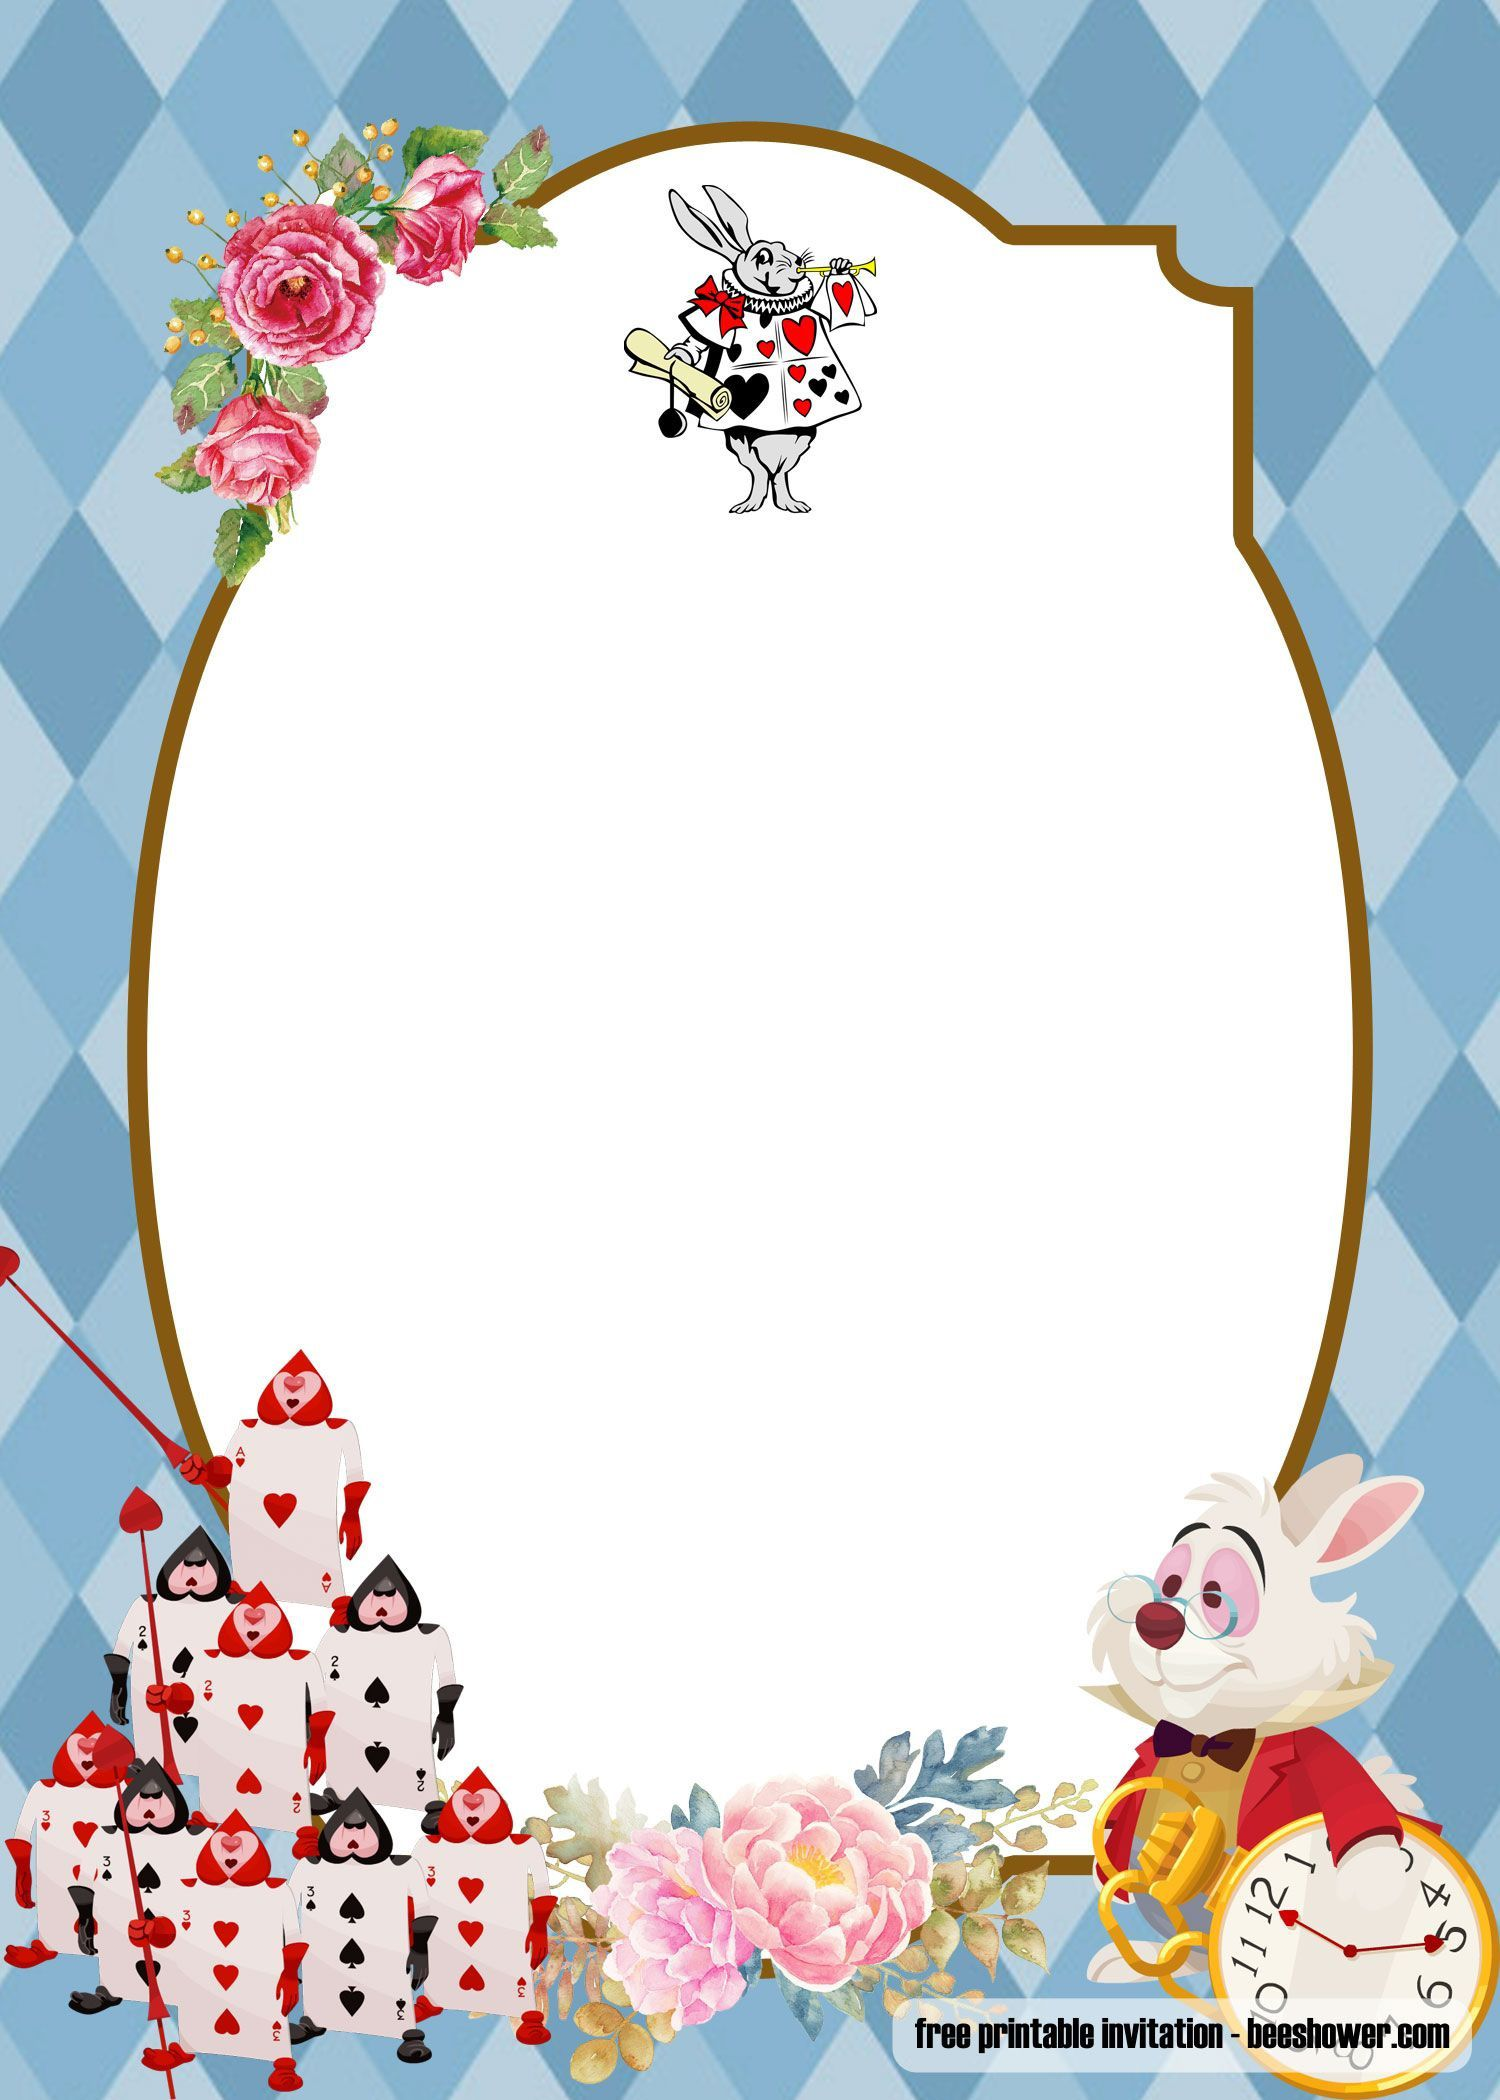 006 Staggering Alice In Wonderland Birthday Party Invitation Printable Free Highest Clarity Full